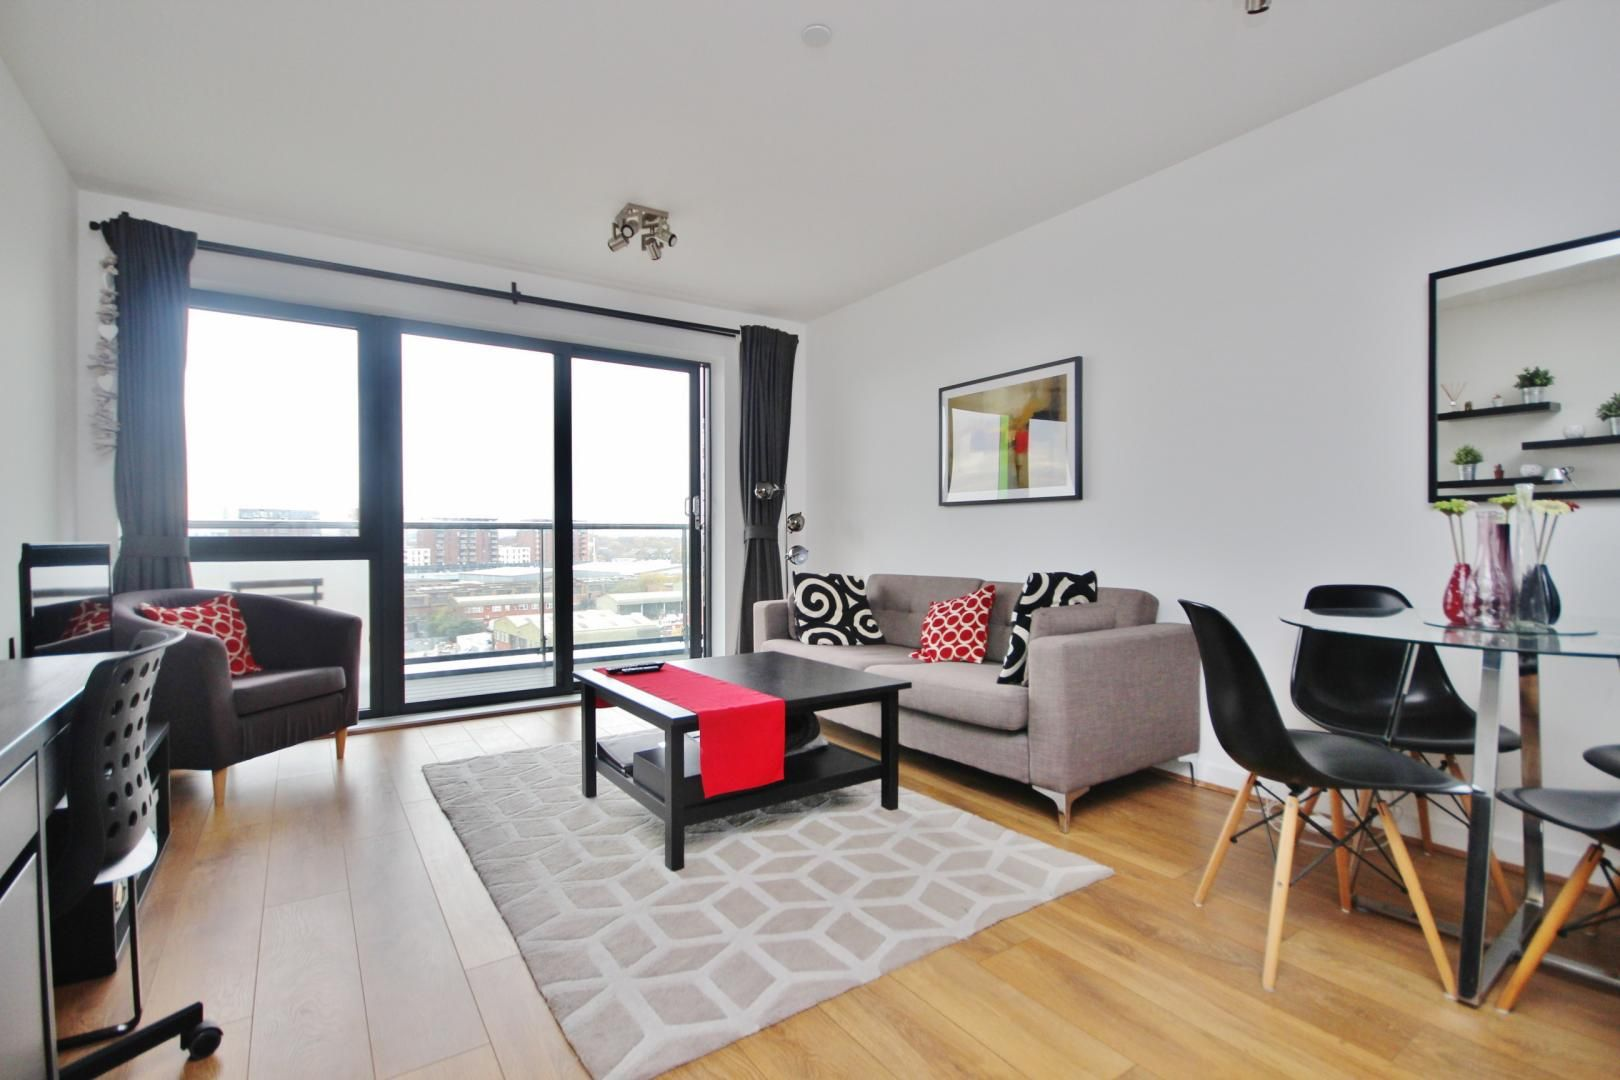 1 bed flat to rent in Yeoman Court, E14